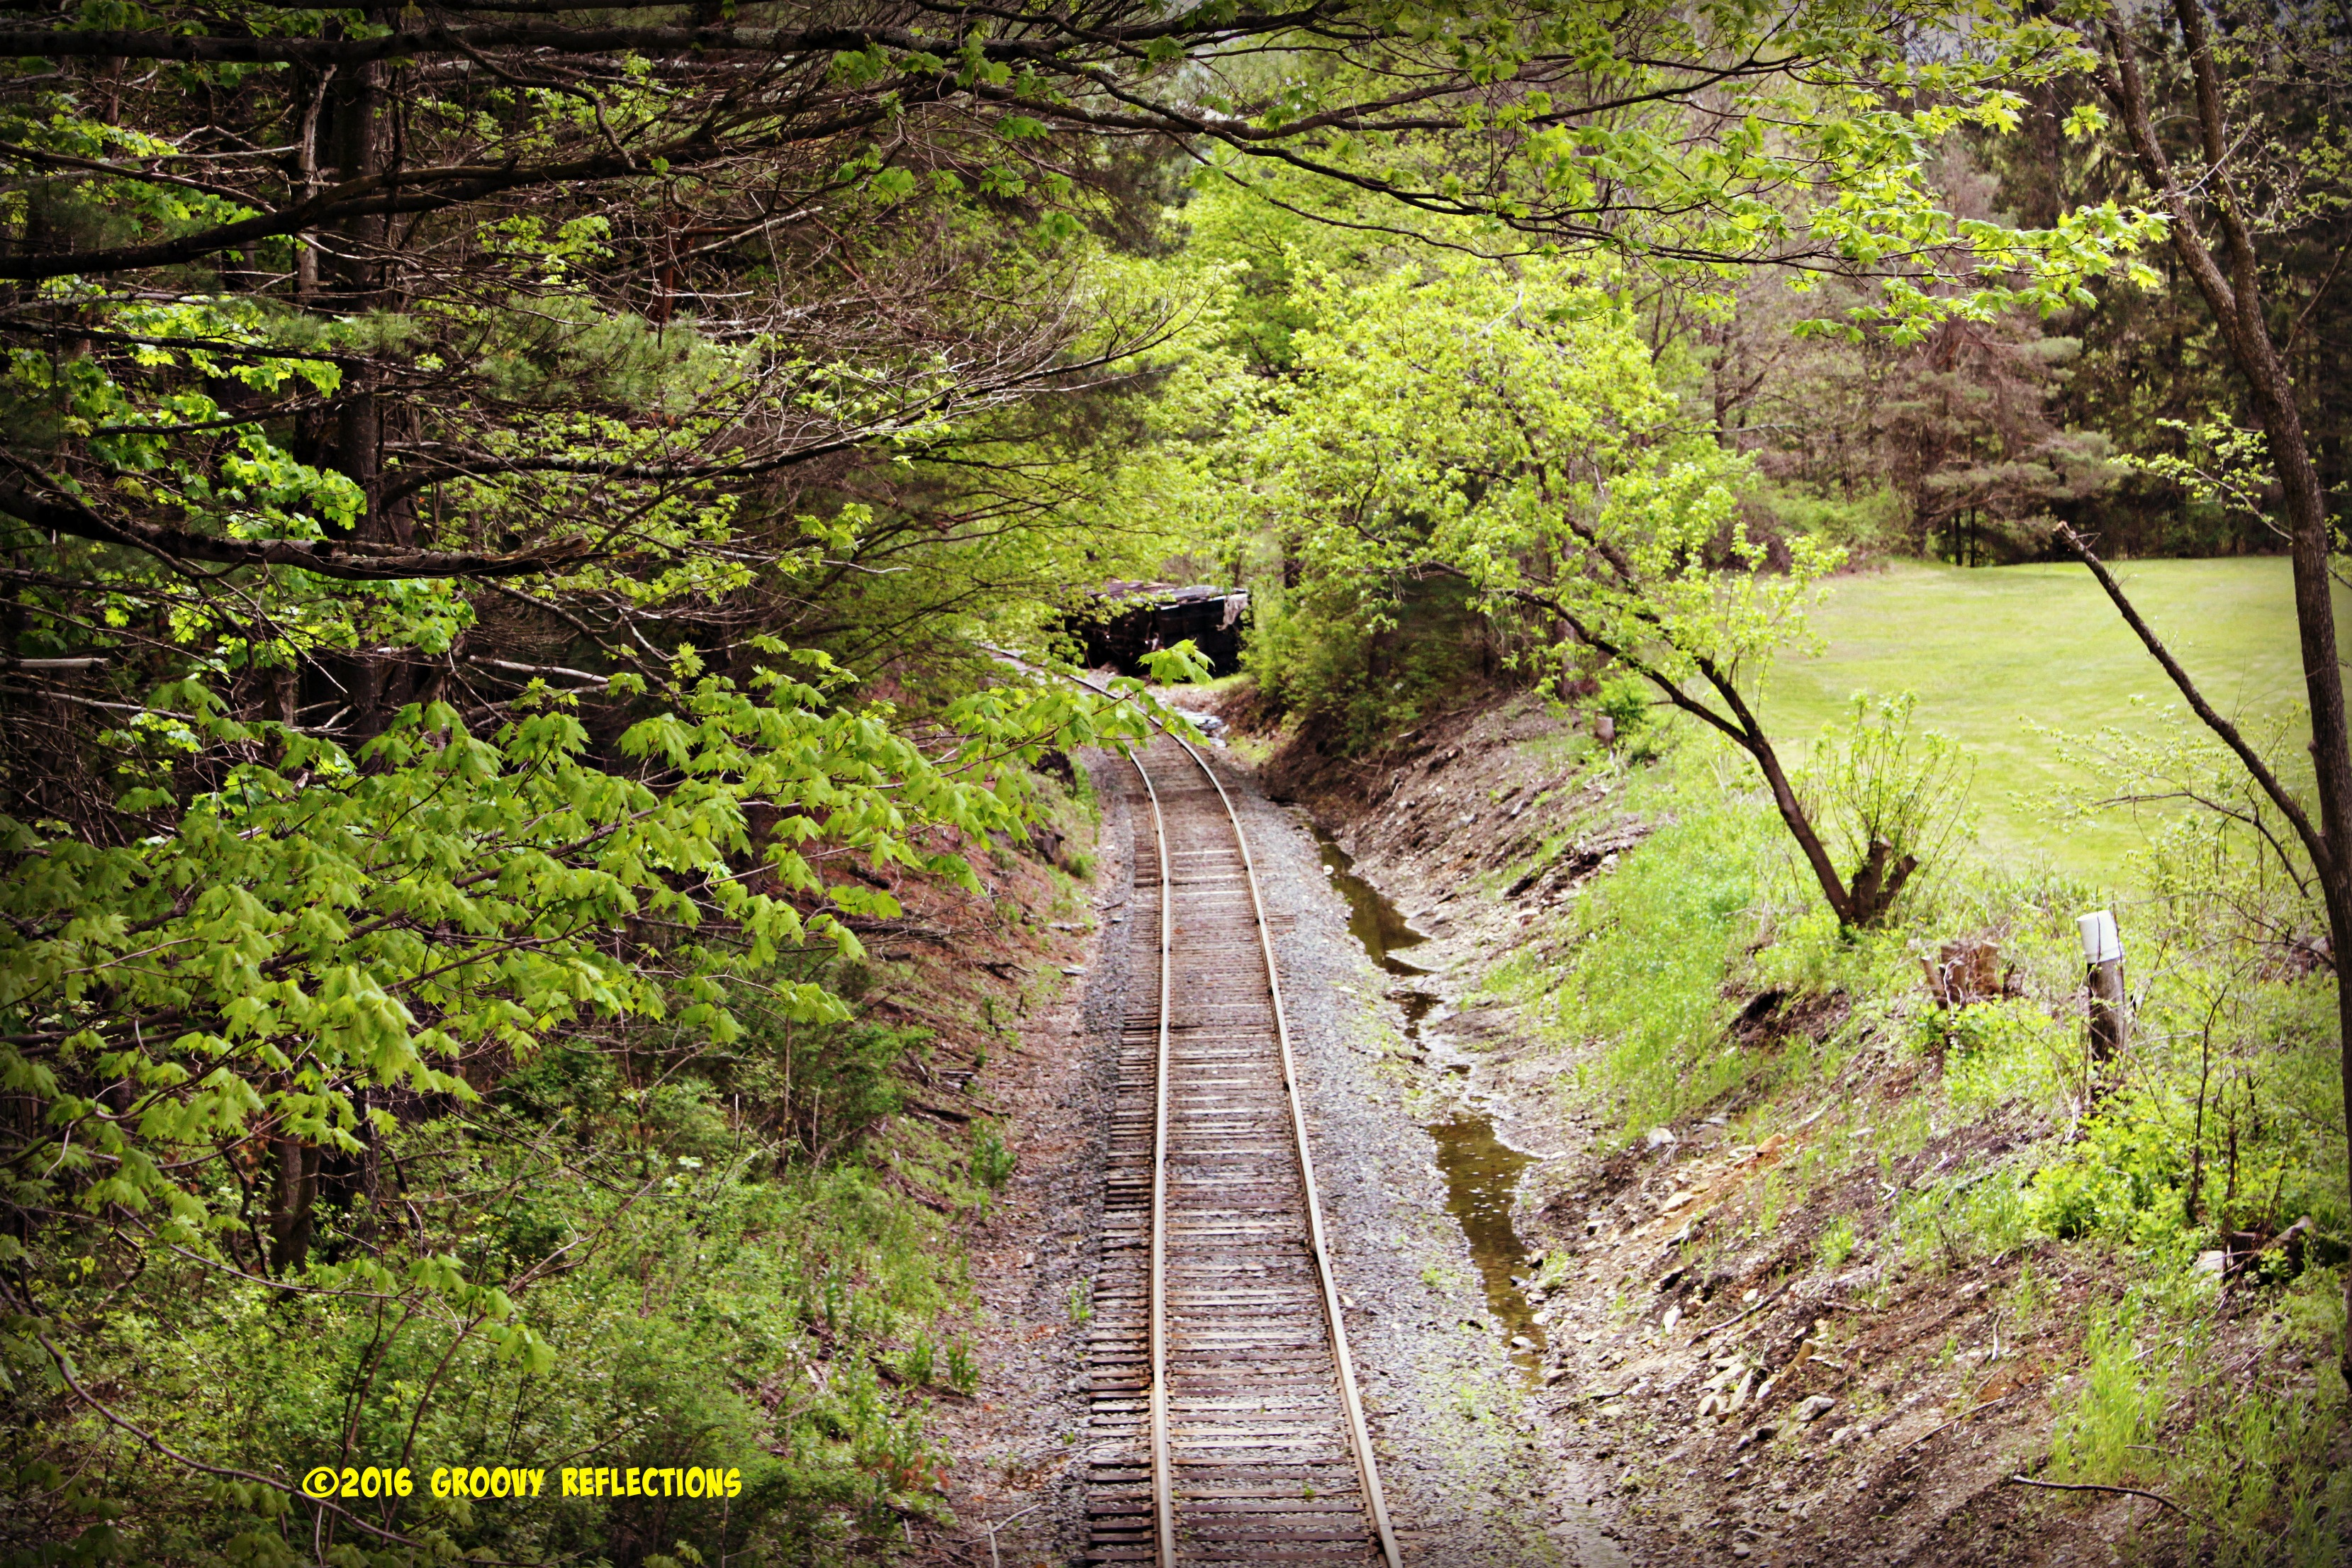 Railroad Tracks in Springtime